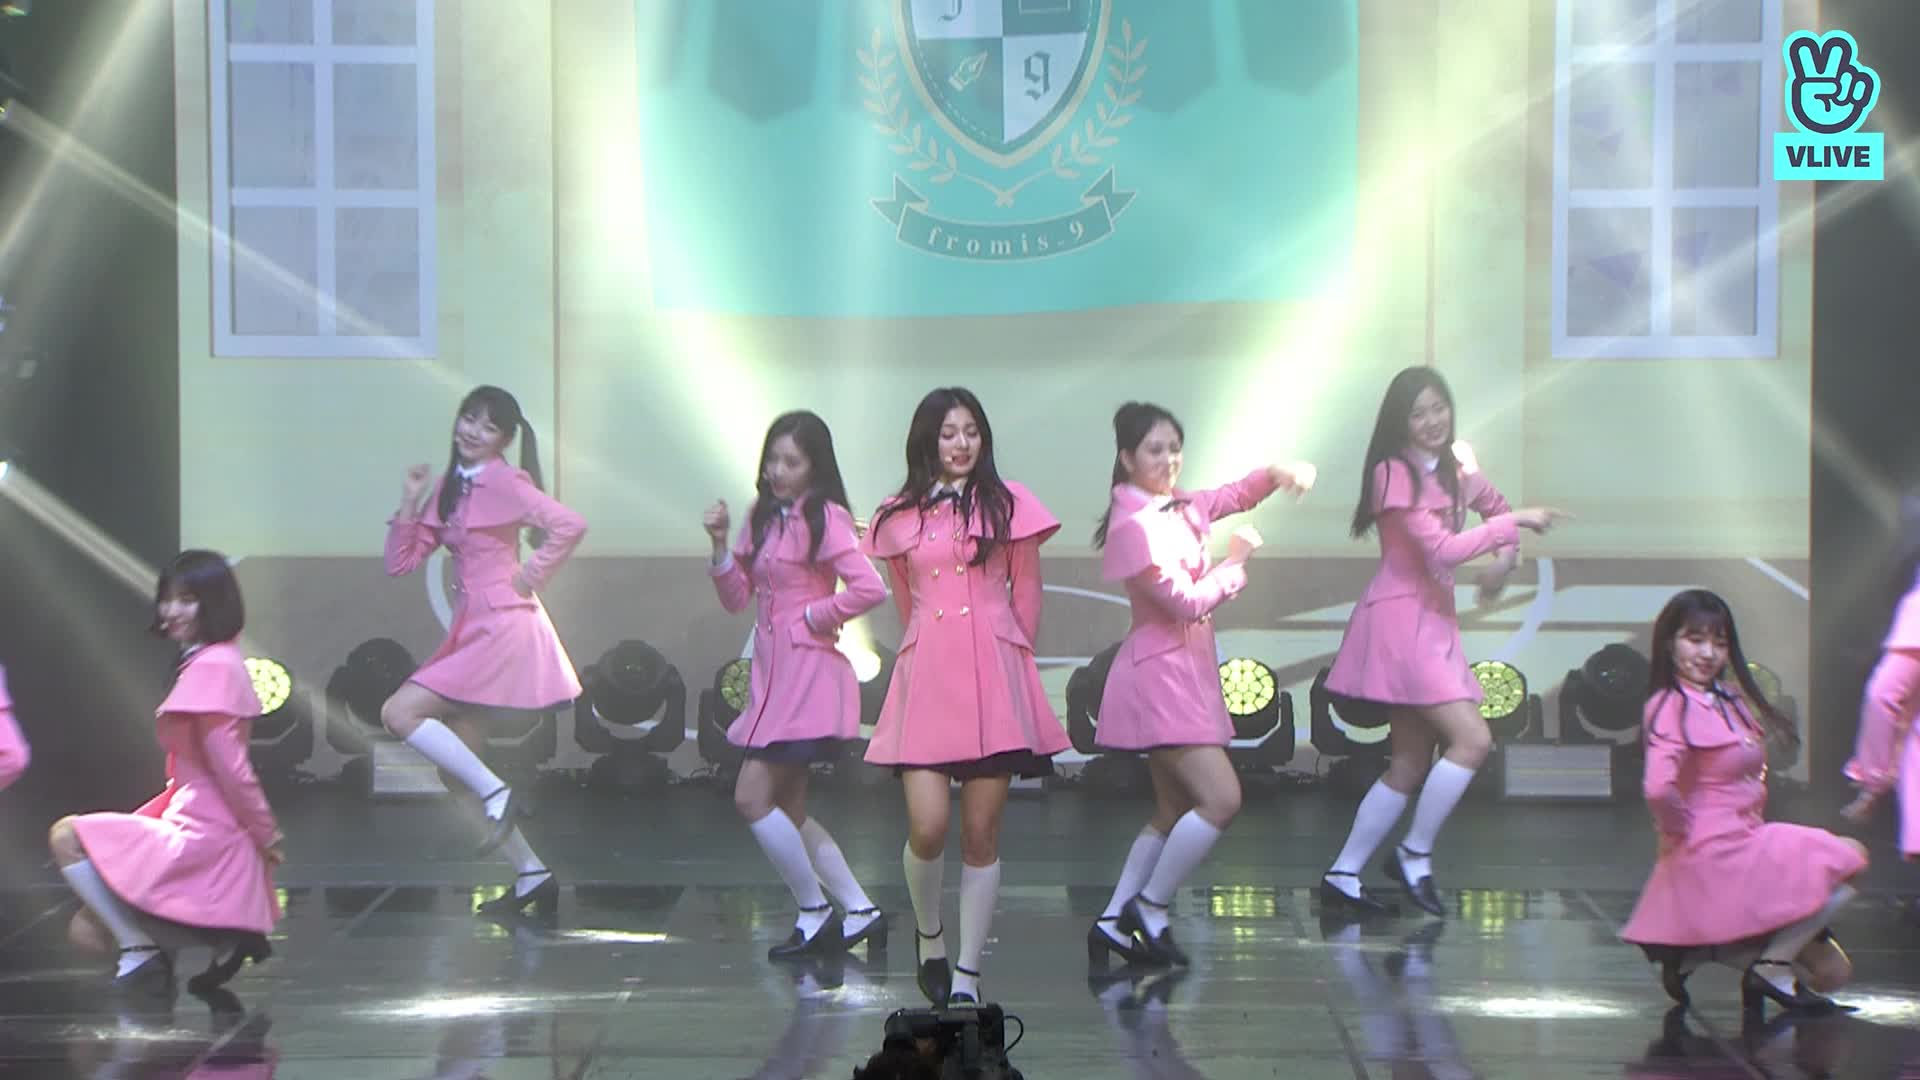 """fromis_9 (프로미스나인) 'To Heart' - DEBUT SHOWCASE """"To. Heart from. fromis_9"""""""